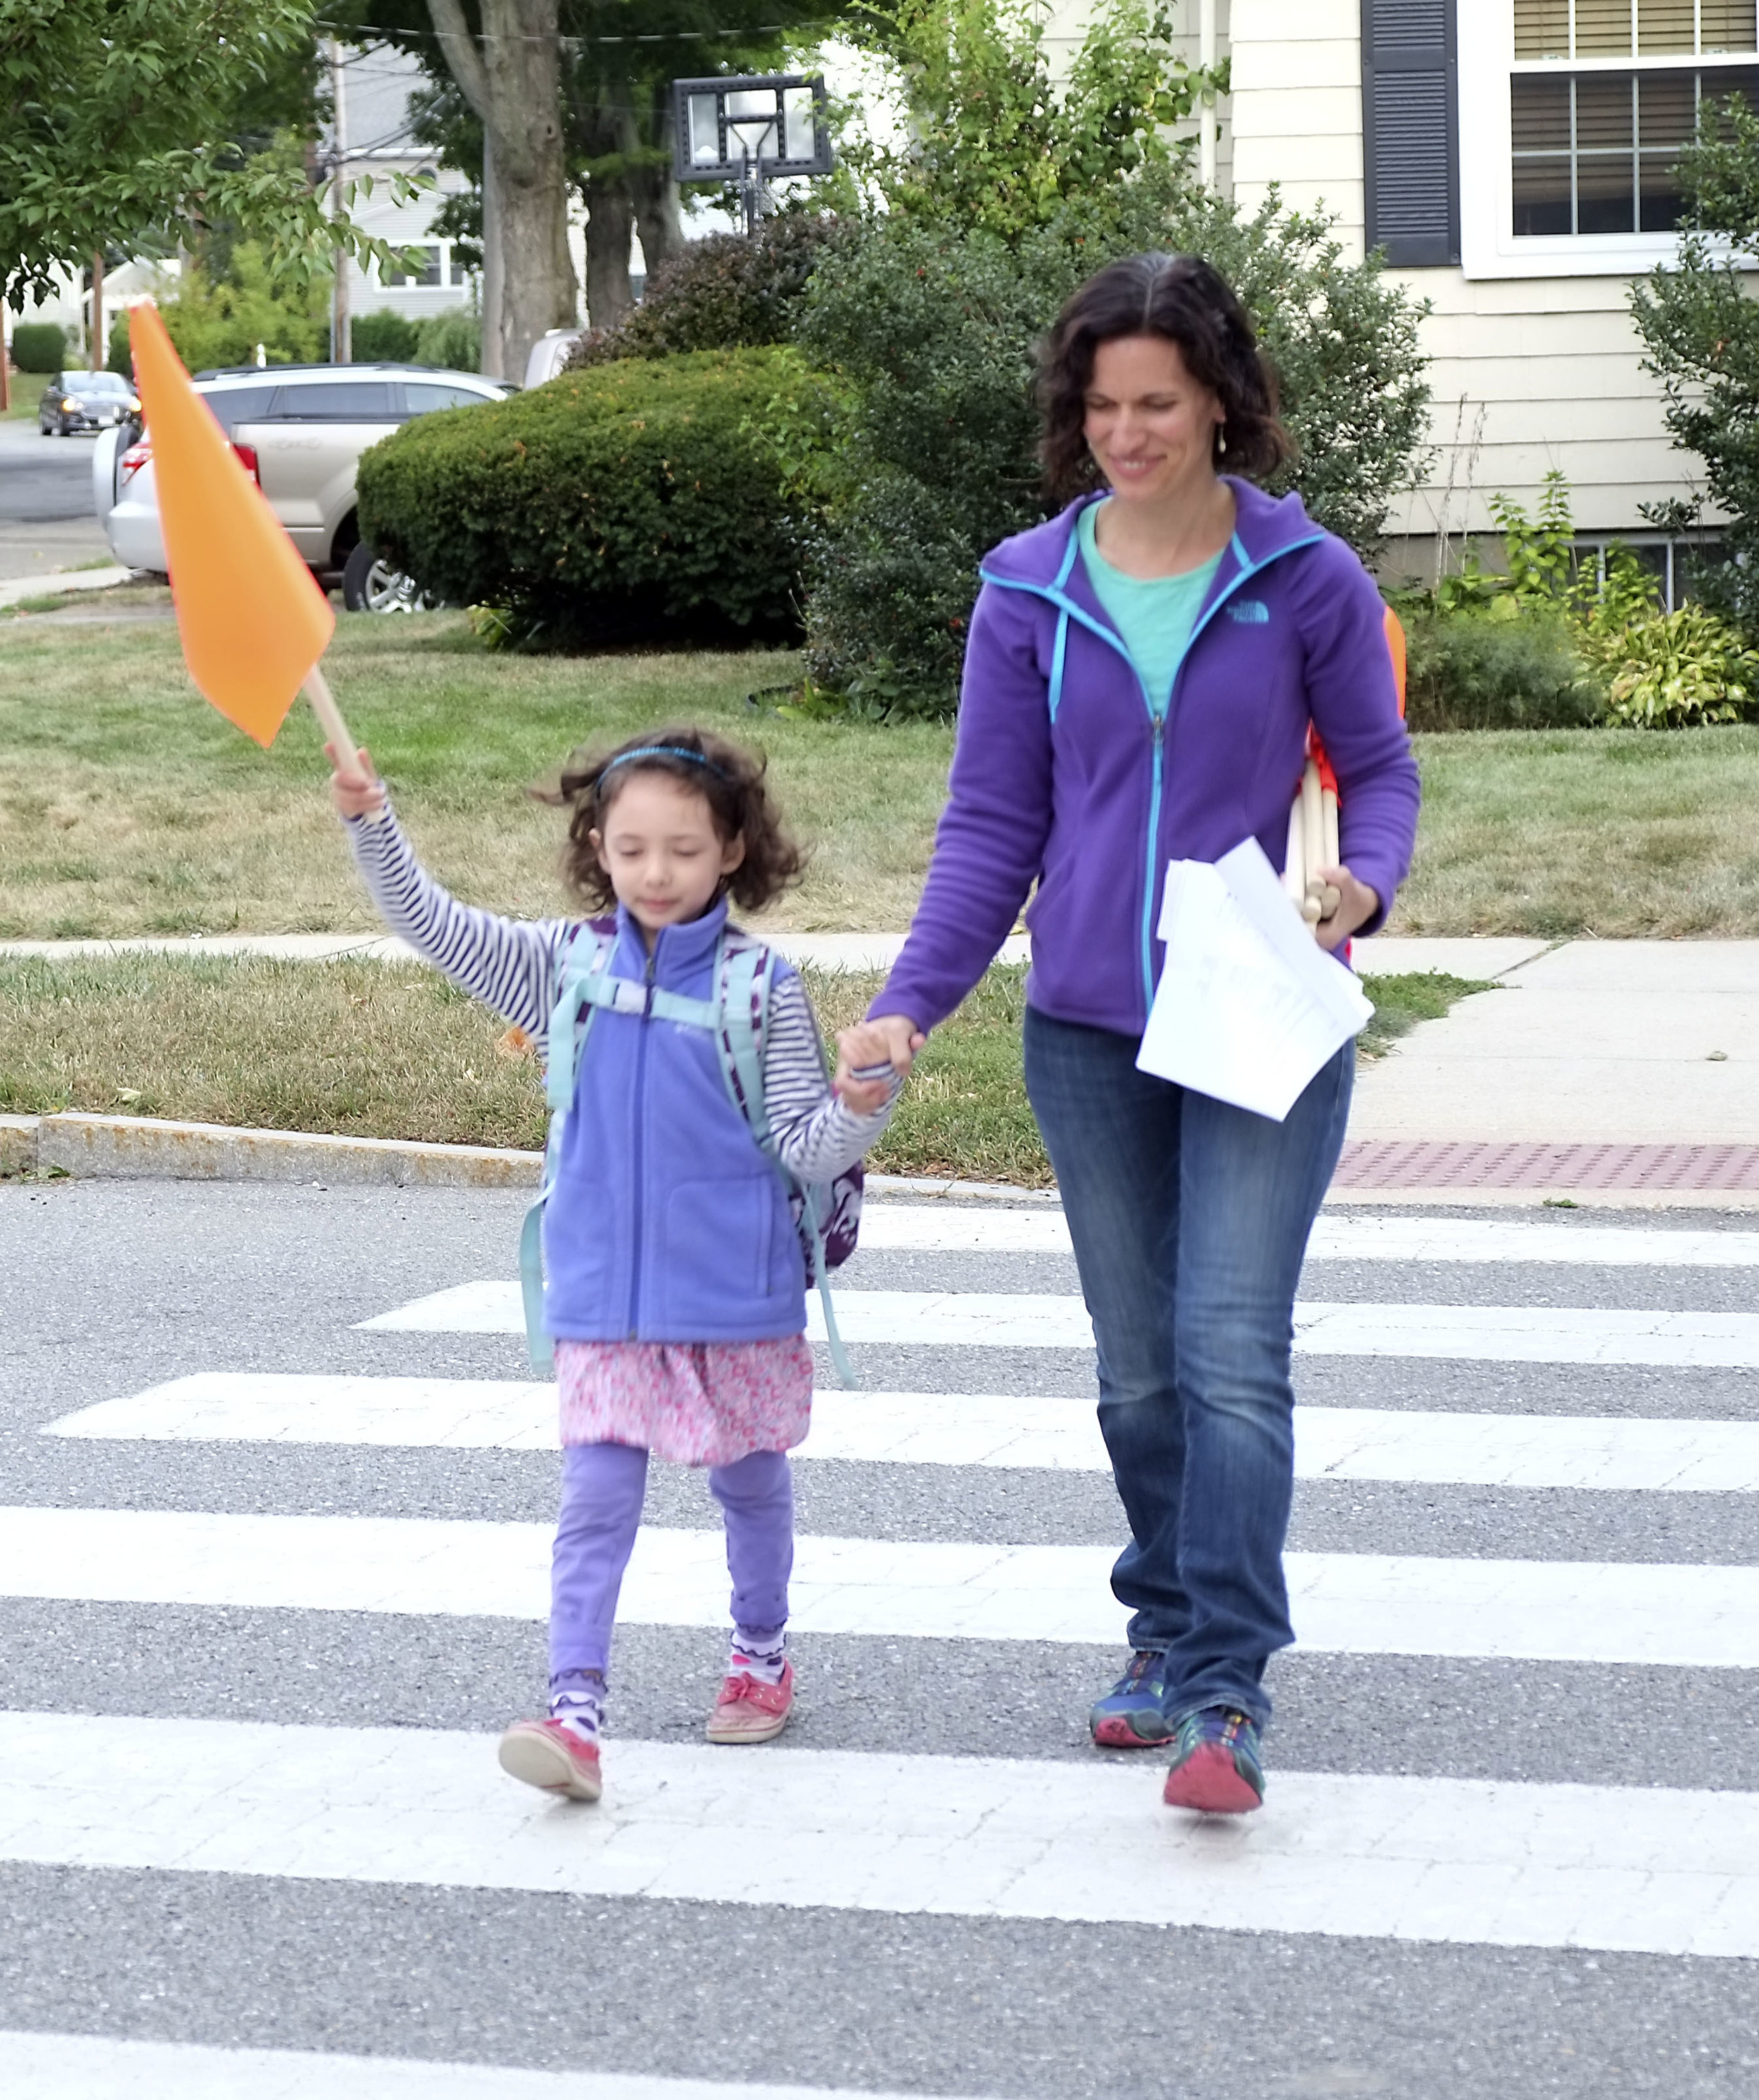 Be Well Belmont is a sponsor of the Crosswalk Flags project  To increase the safety of pedestrians in Belmont, especially near our schools, Belmont is starting a crosswalk flag pilot program at four locations along popular school walking routes. The crosswalk flag program is a low-cost, low-tech tool designed to help increase pedestrian visibility and driver awareness in Belmont.